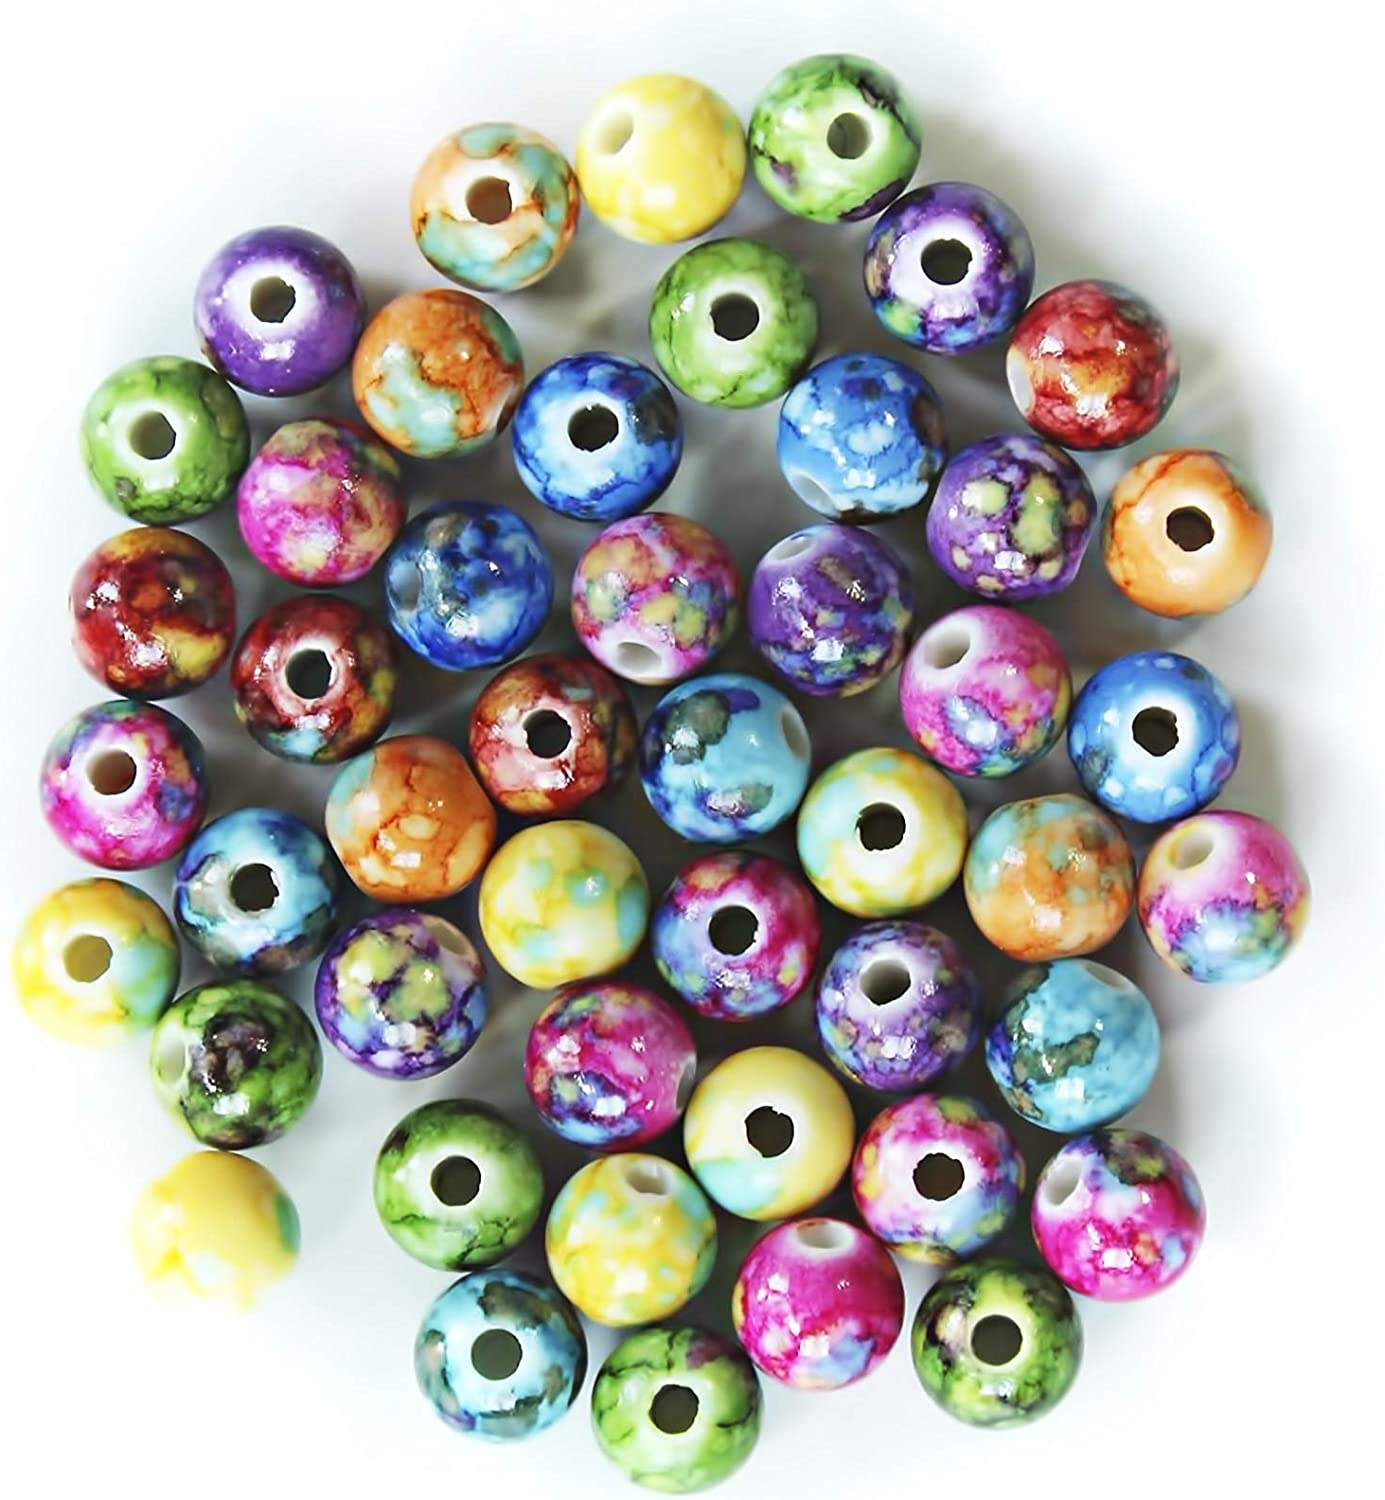 ALL in ONE 10mm Mixed Color Plastic Loose Beads with Nebula Pattern for DIY Craft Jewelry Making 44g/100pcs